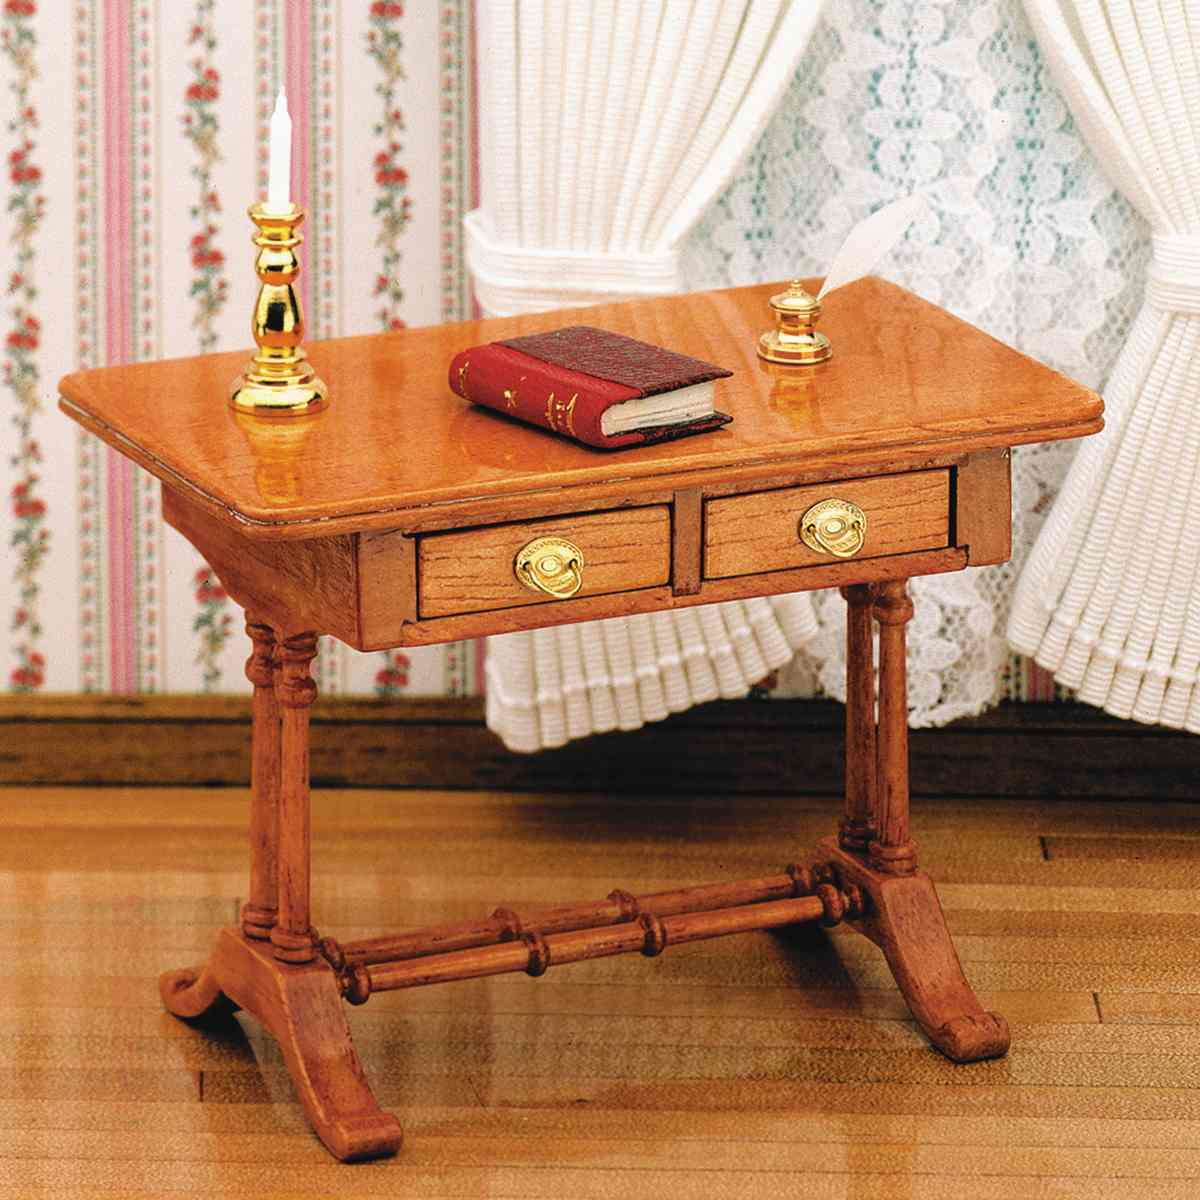 Biedermeier lady's writing desk